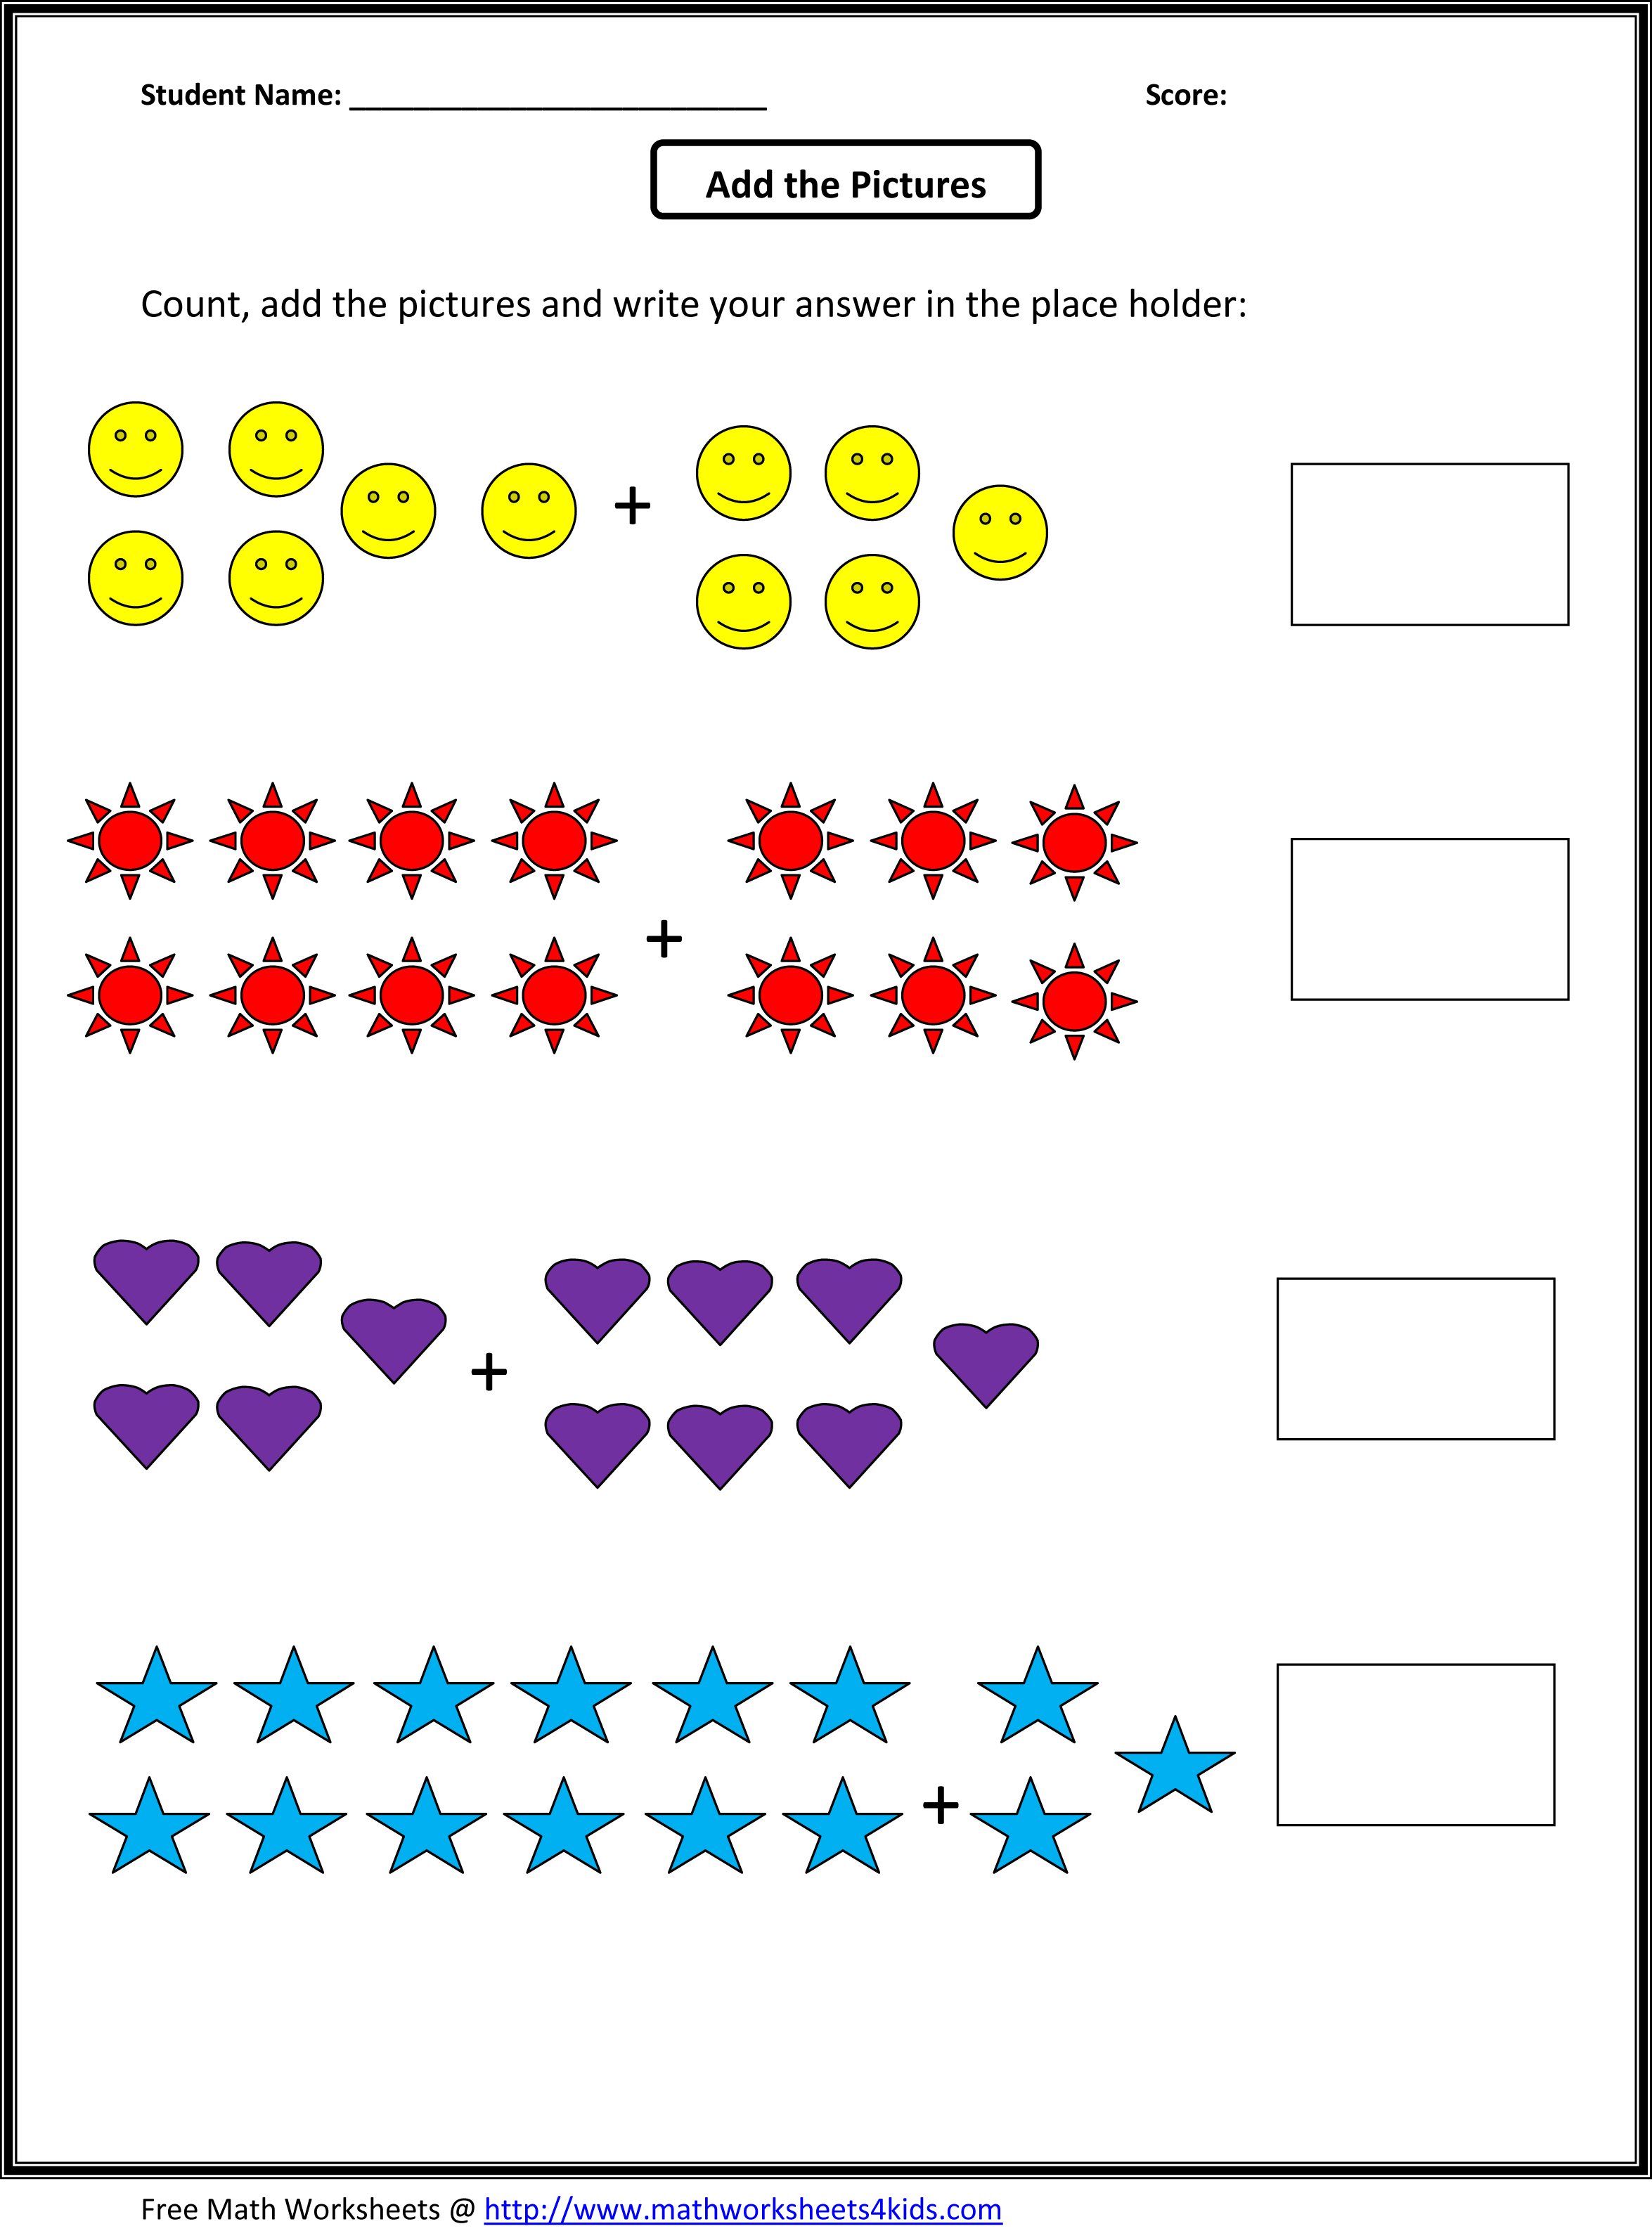 Weirdmailus  Gorgeous Grade  Maths Worksheet  Reocurent With Exquisite Math Worksheets For St Grade Free  Reocurent With Amusing Worksheet For Letter Q Also Two By Two A Friend For You Algebra Worksheet Key In Addition Systems Of Equations By Elimination Worksheet And Rational Exponents Worksheet With Answers As Well As Plural Nouns Worksheets For Kindergarten Additionally Solution Focused Brief Therapy Worksheets From Reocurentcom With Weirdmailus  Exquisite Grade  Maths Worksheet  Reocurent With Amusing Math Worksheets For St Grade Free  Reocurent And Gorgeous Worksheet For Letter Q Also Two By Two A Friend For You Algebra Worksheet Key In Addition Systems Of Equations By Elimination Worksheet From Reocurentcom